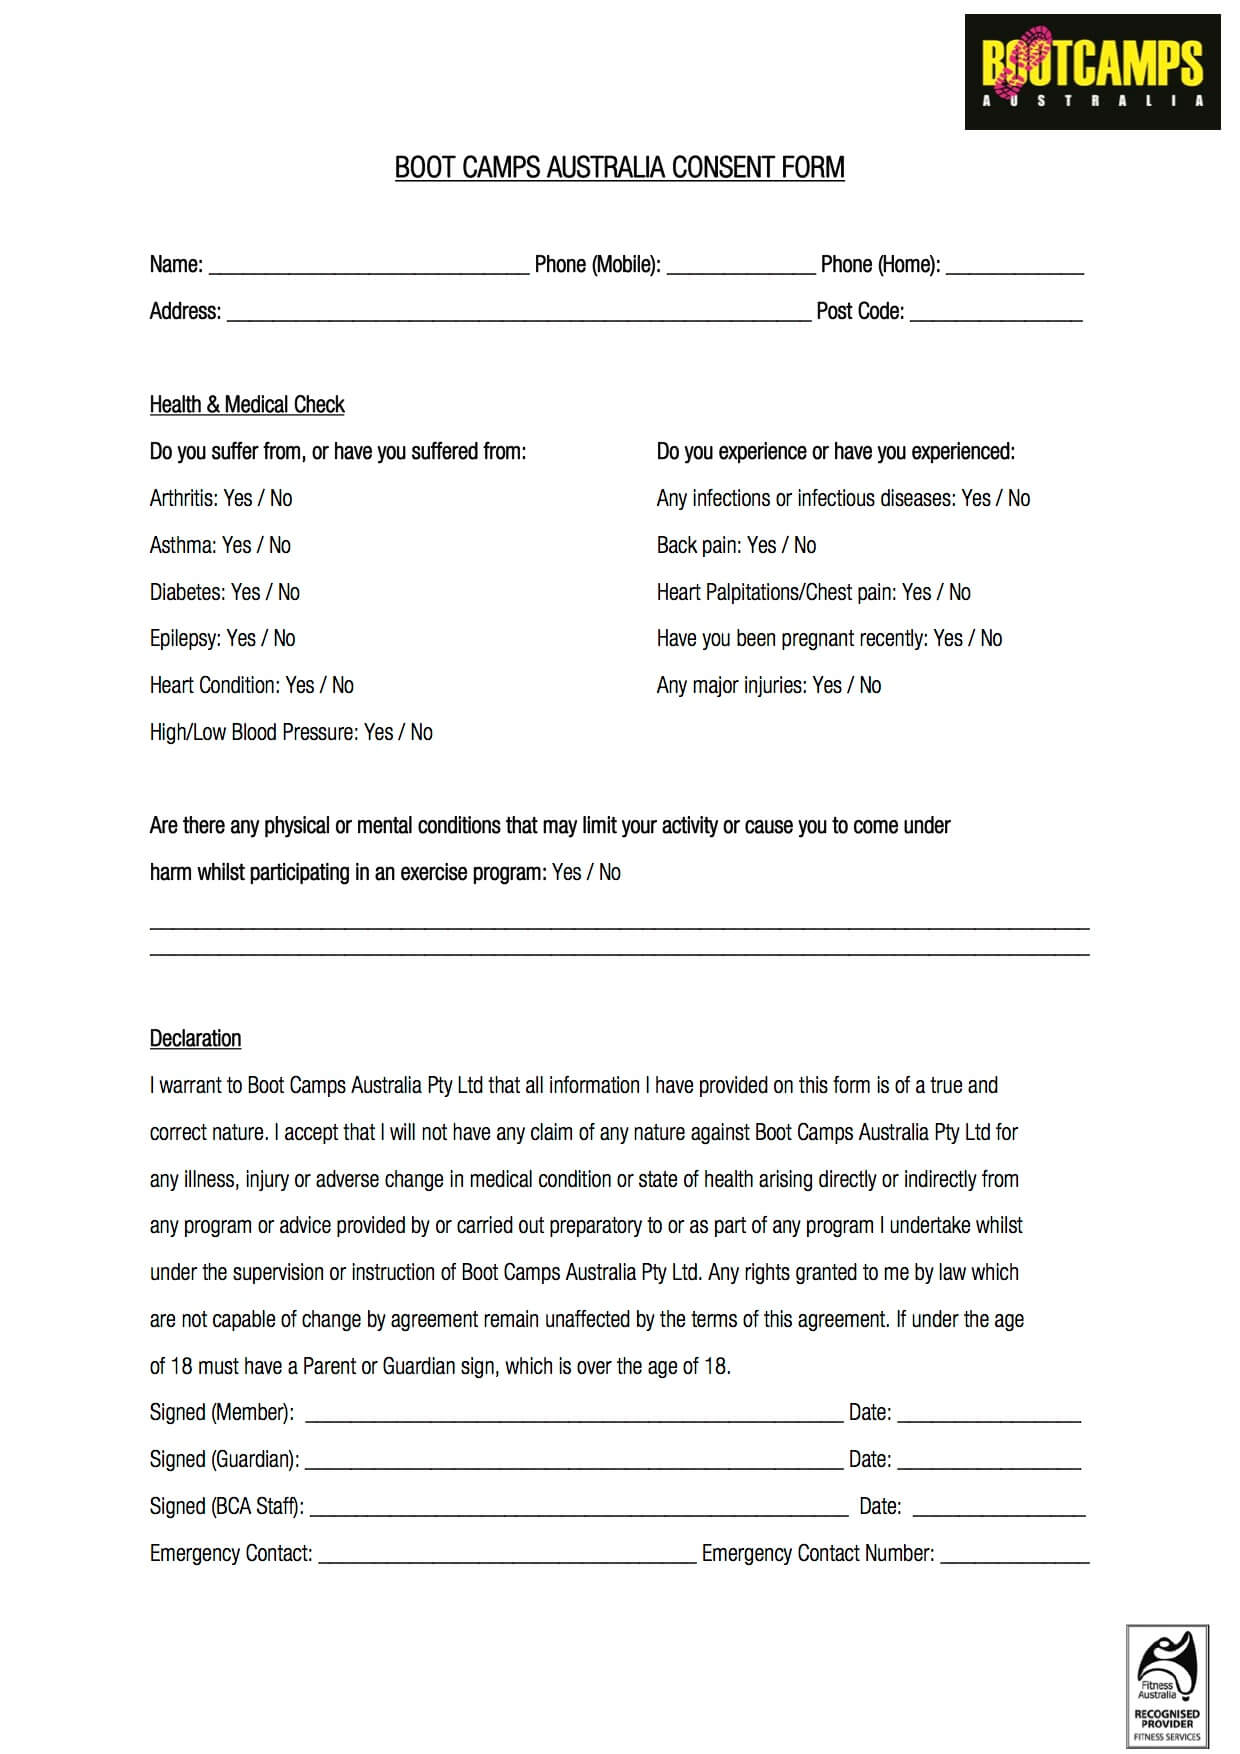 download job application form for boots